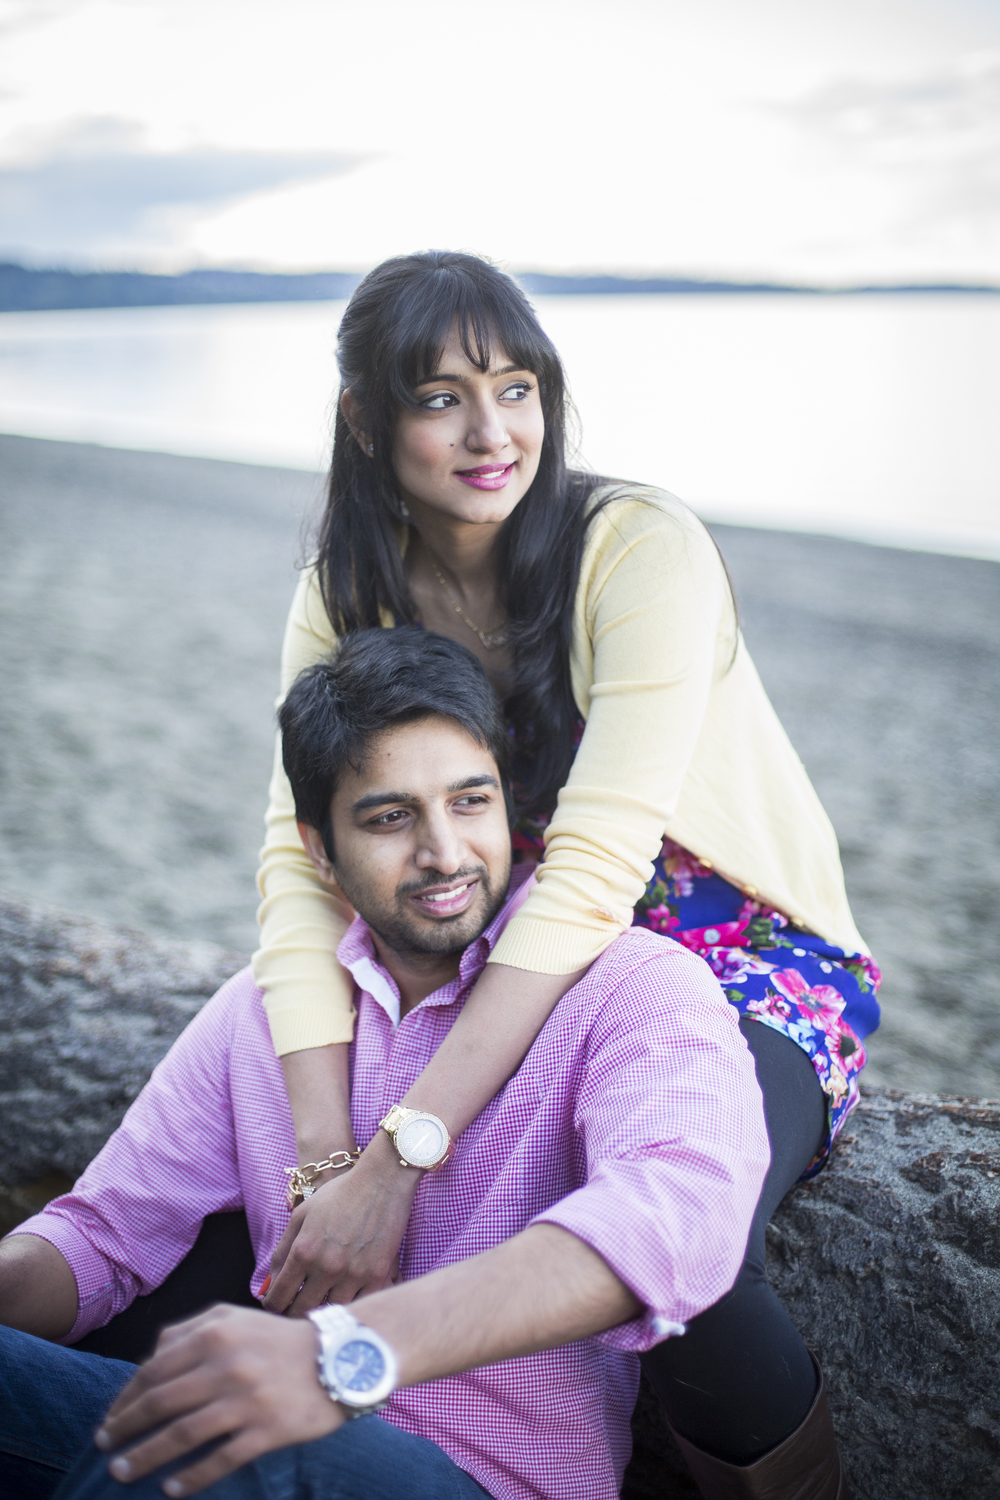 Jaeda-Reed-Photography-Priyanka-and-Prasanth-7.jpg